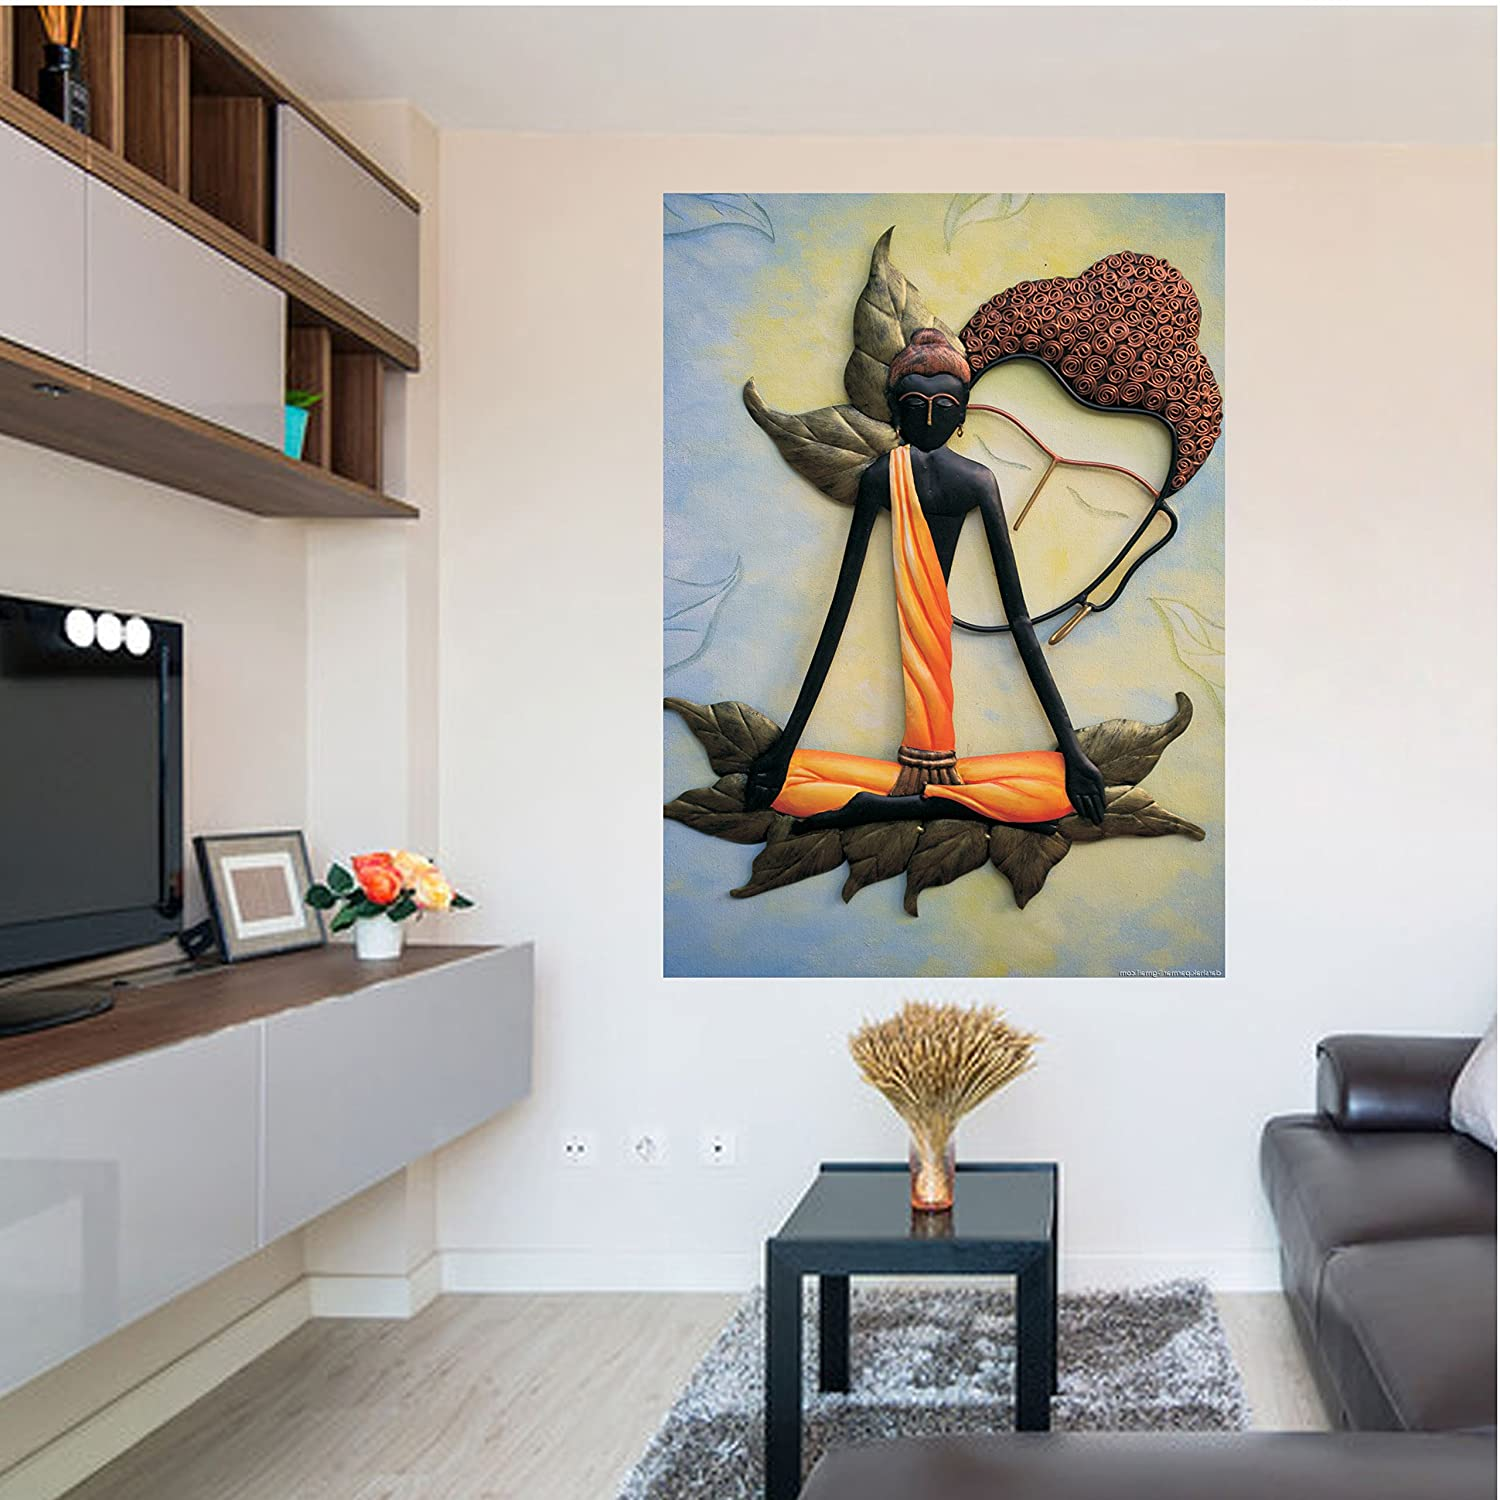 for design ideas wall home house art room decorating decor living interior images modern